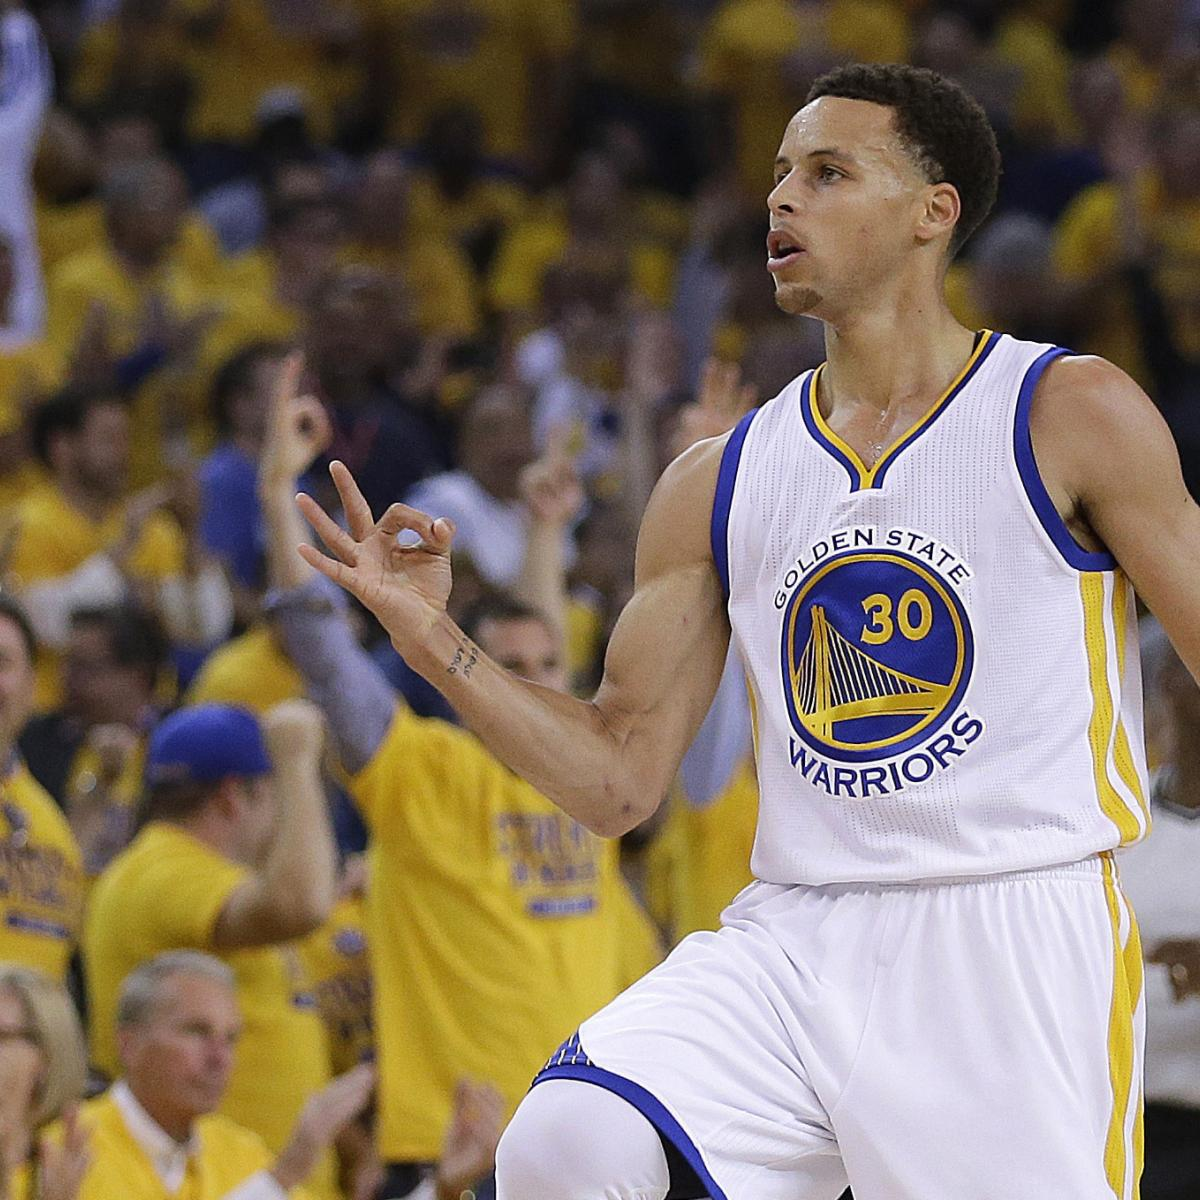 Houston Rockets Vs Golden State Warriors Lineup: NBA Playoffs 2015: Updated Standings, Conference Finals